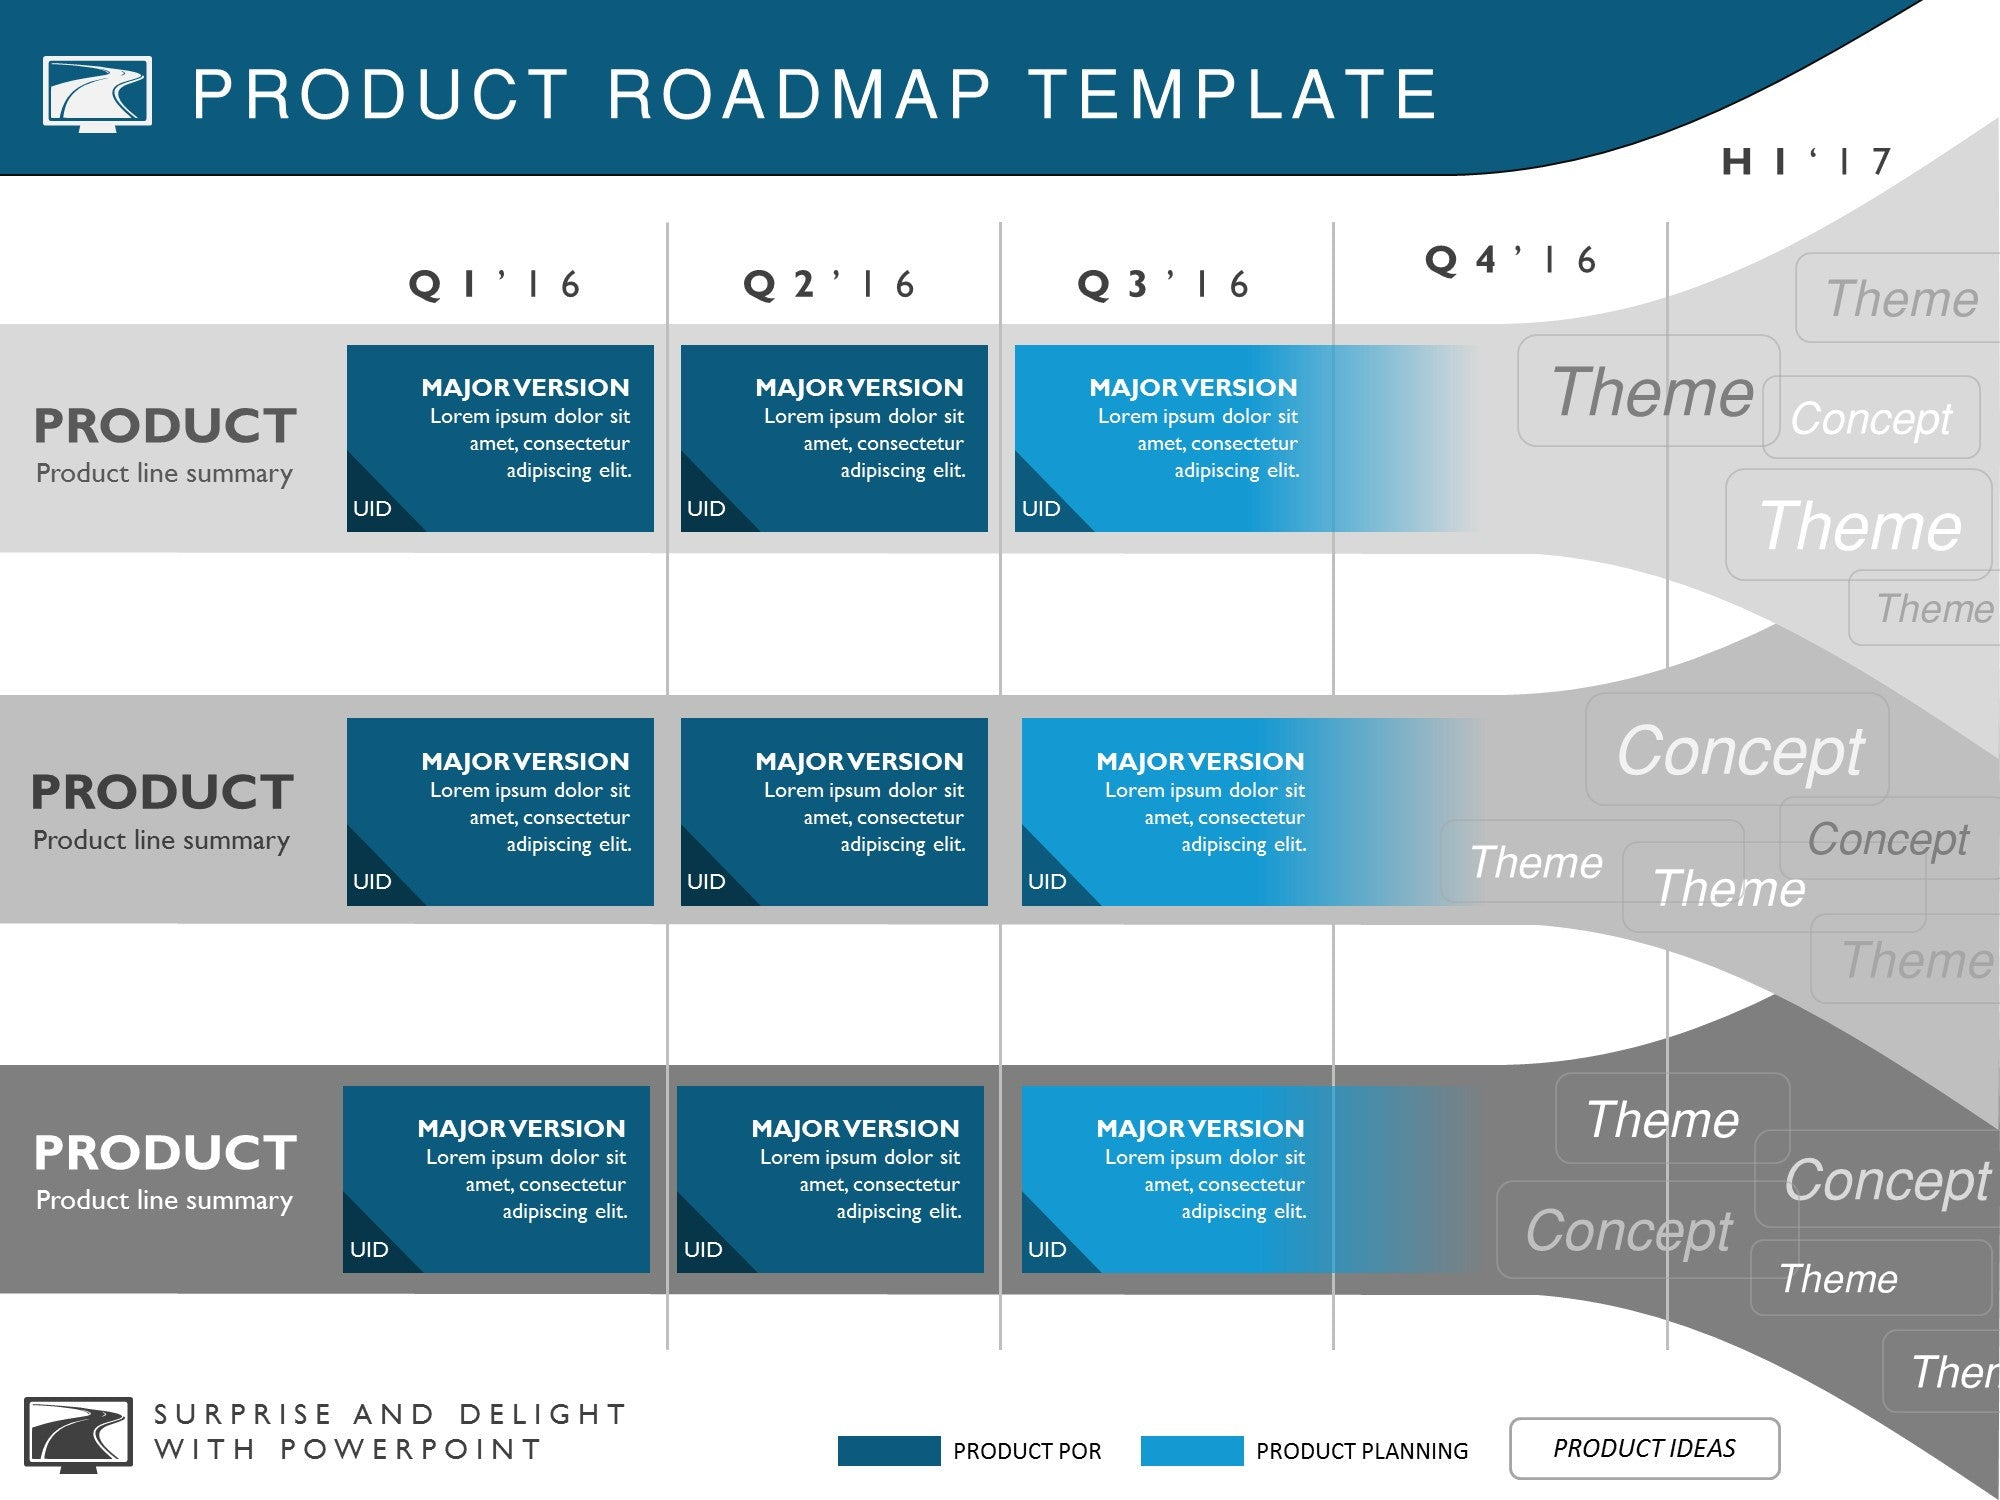 professional powerpoint templates from my product roadmap, Agile Roadmap Powerpoint Template, Powerpoint templates